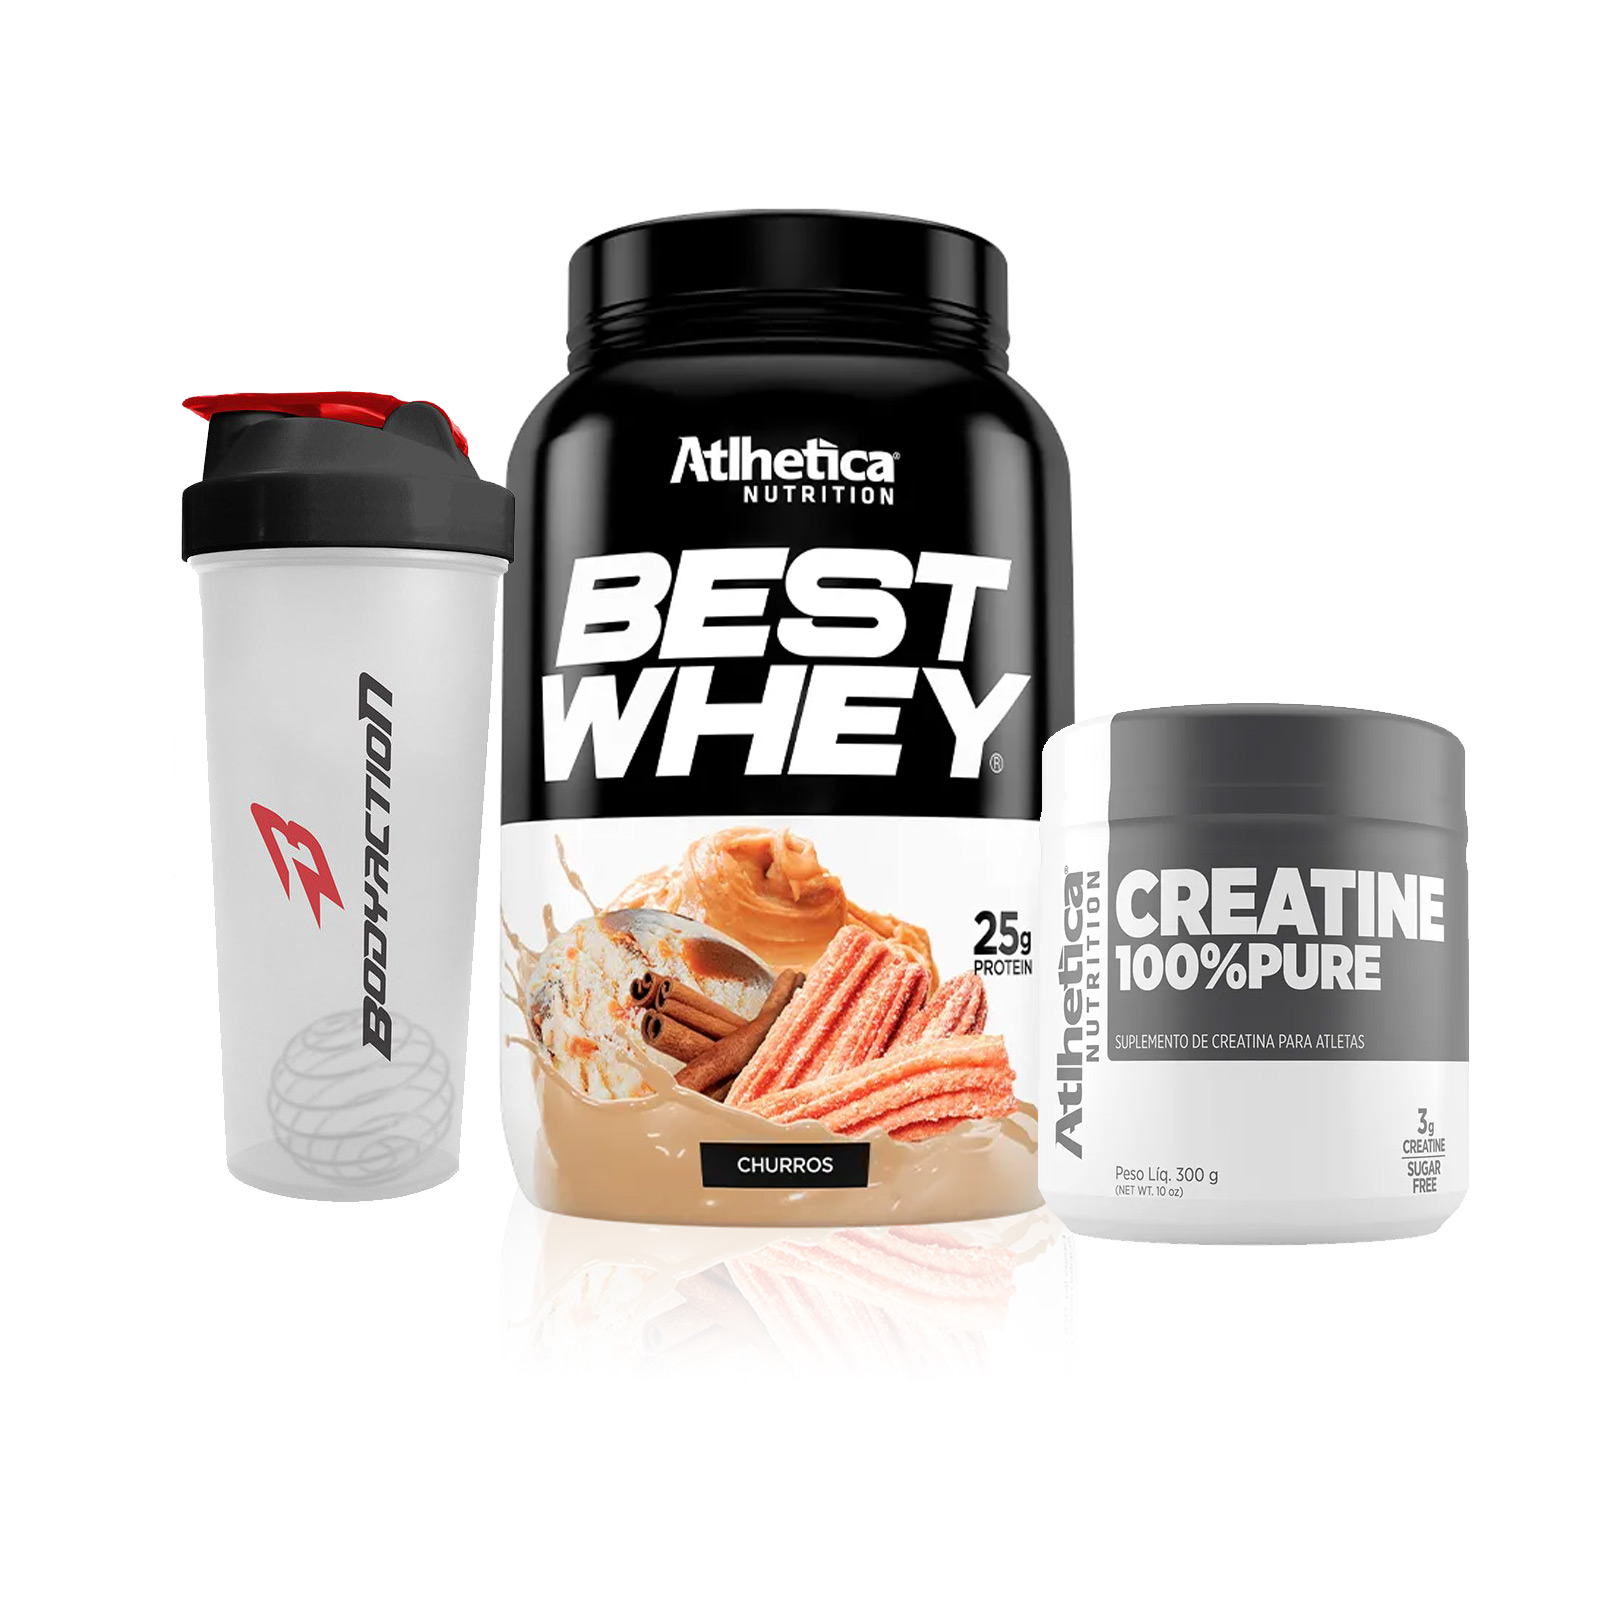 Kit Best Whey + Creatina + Coqueteleira